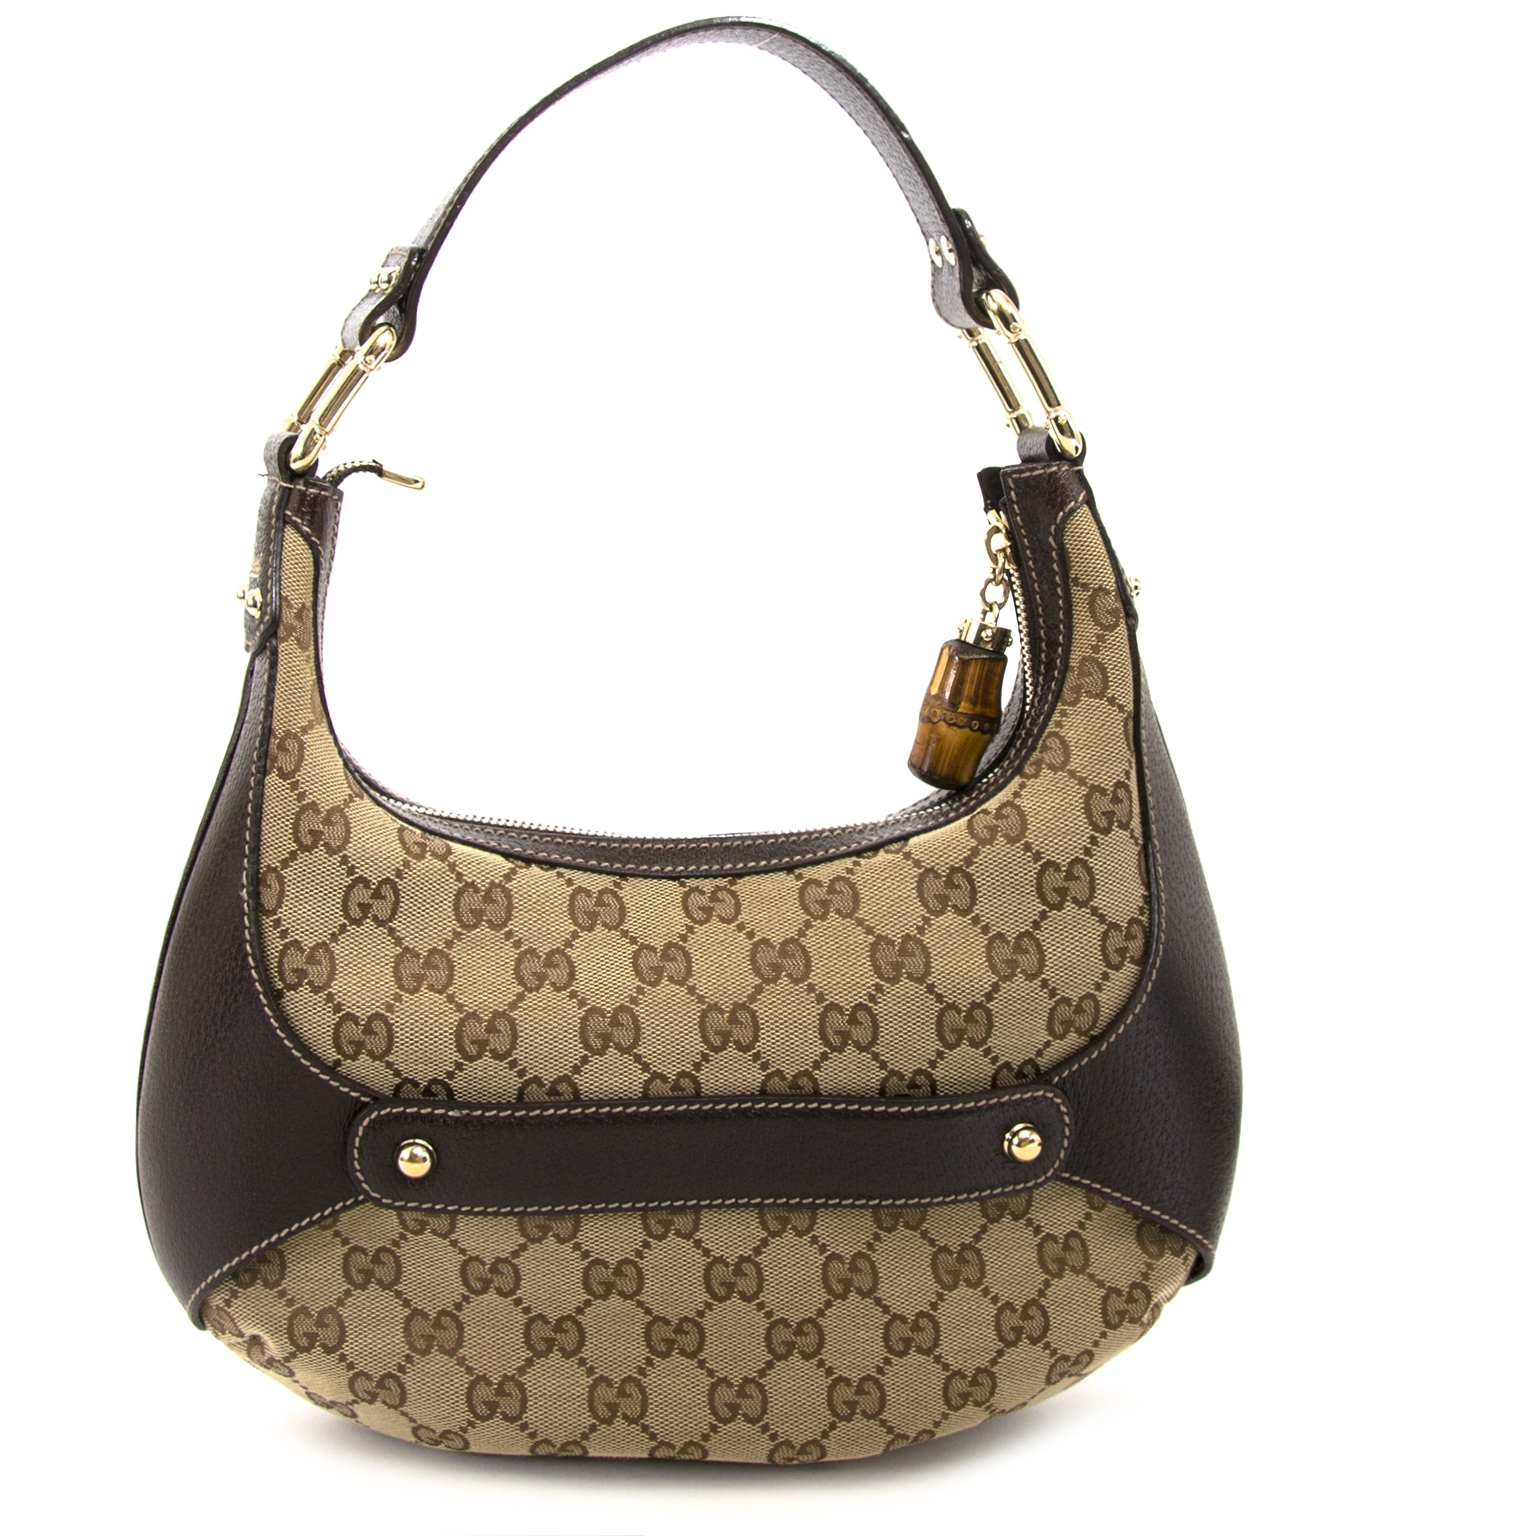 buy Gucci Monogram Amalfi Shoulderbag at labello for the best price